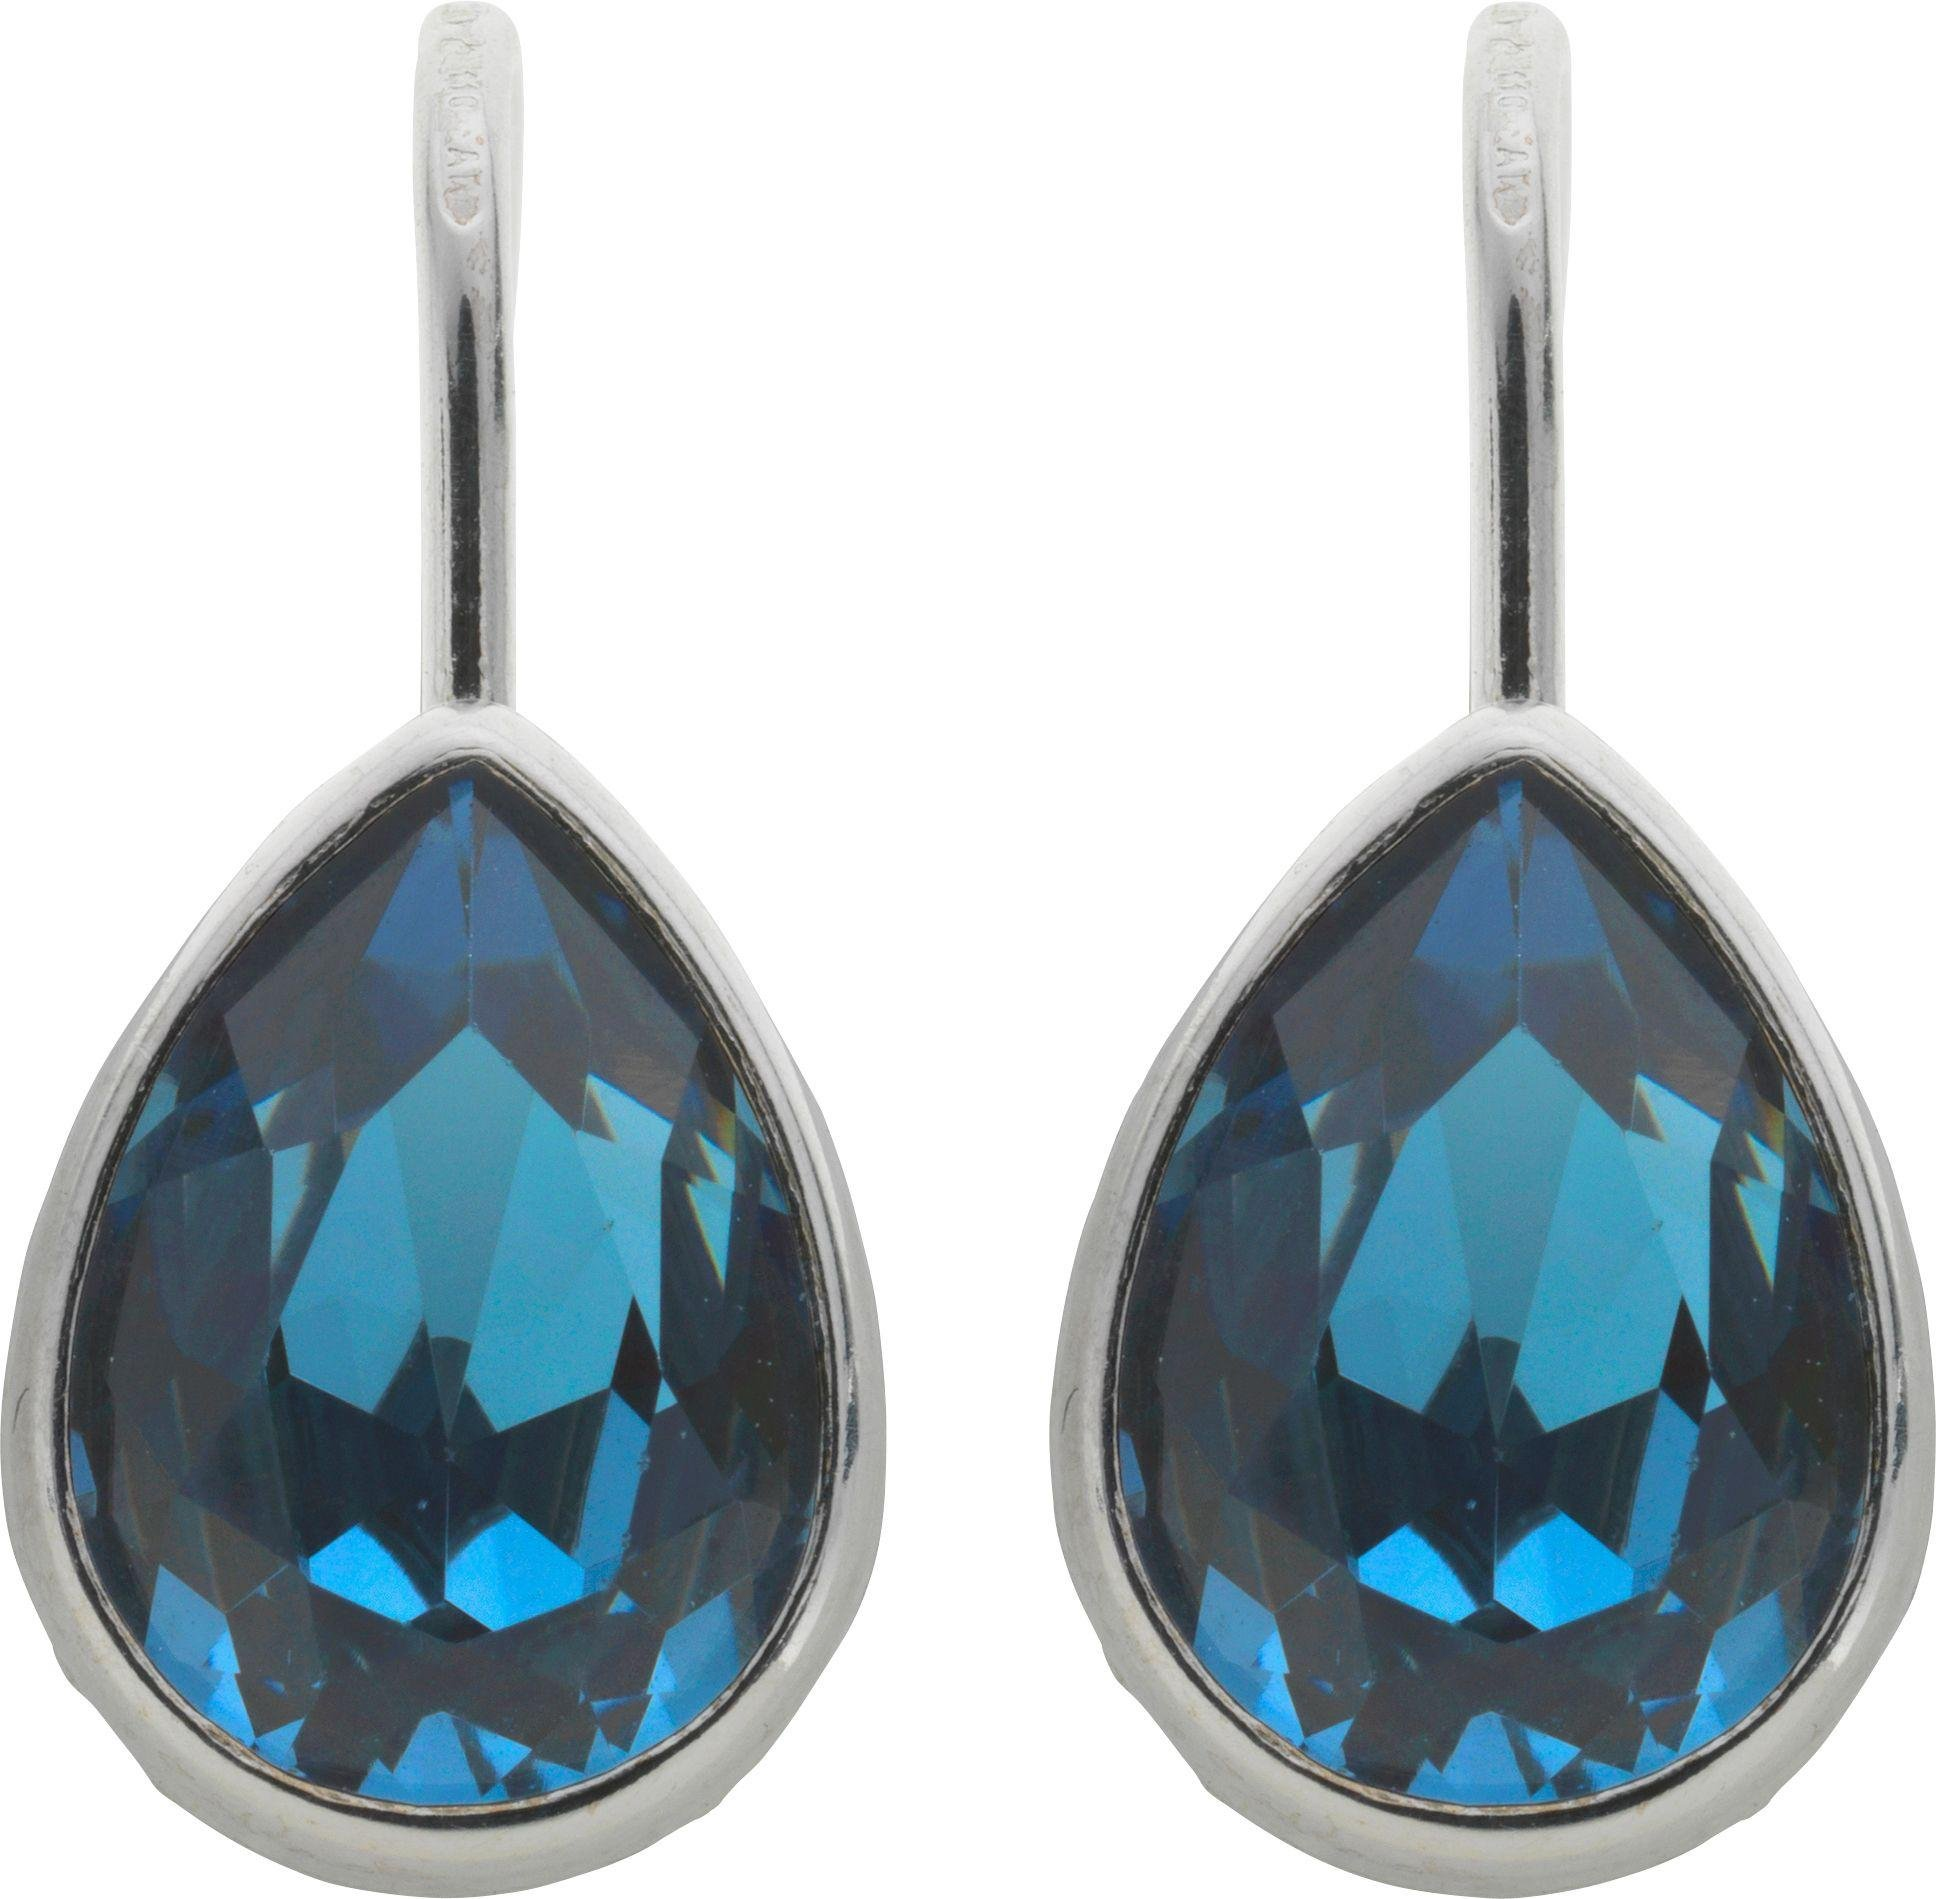 Image of Davvero - Sterling Silver - Blue Crystal - Drop Earrings.